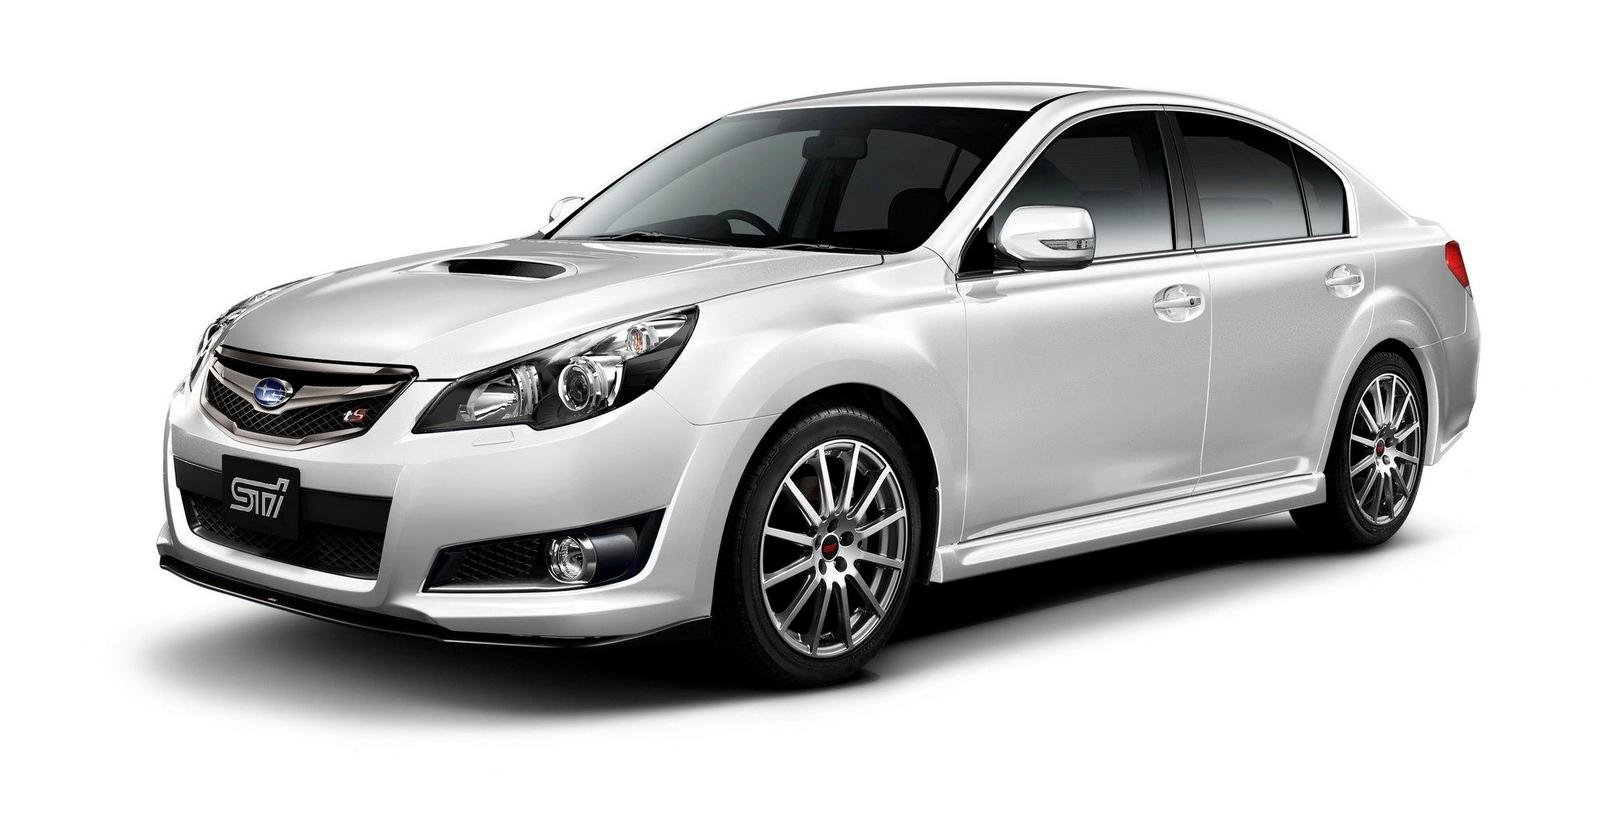 2010 subaru legacy 2 5gt ts review top speed. Black Bedroom Furniture Sets. Home Design Ideas